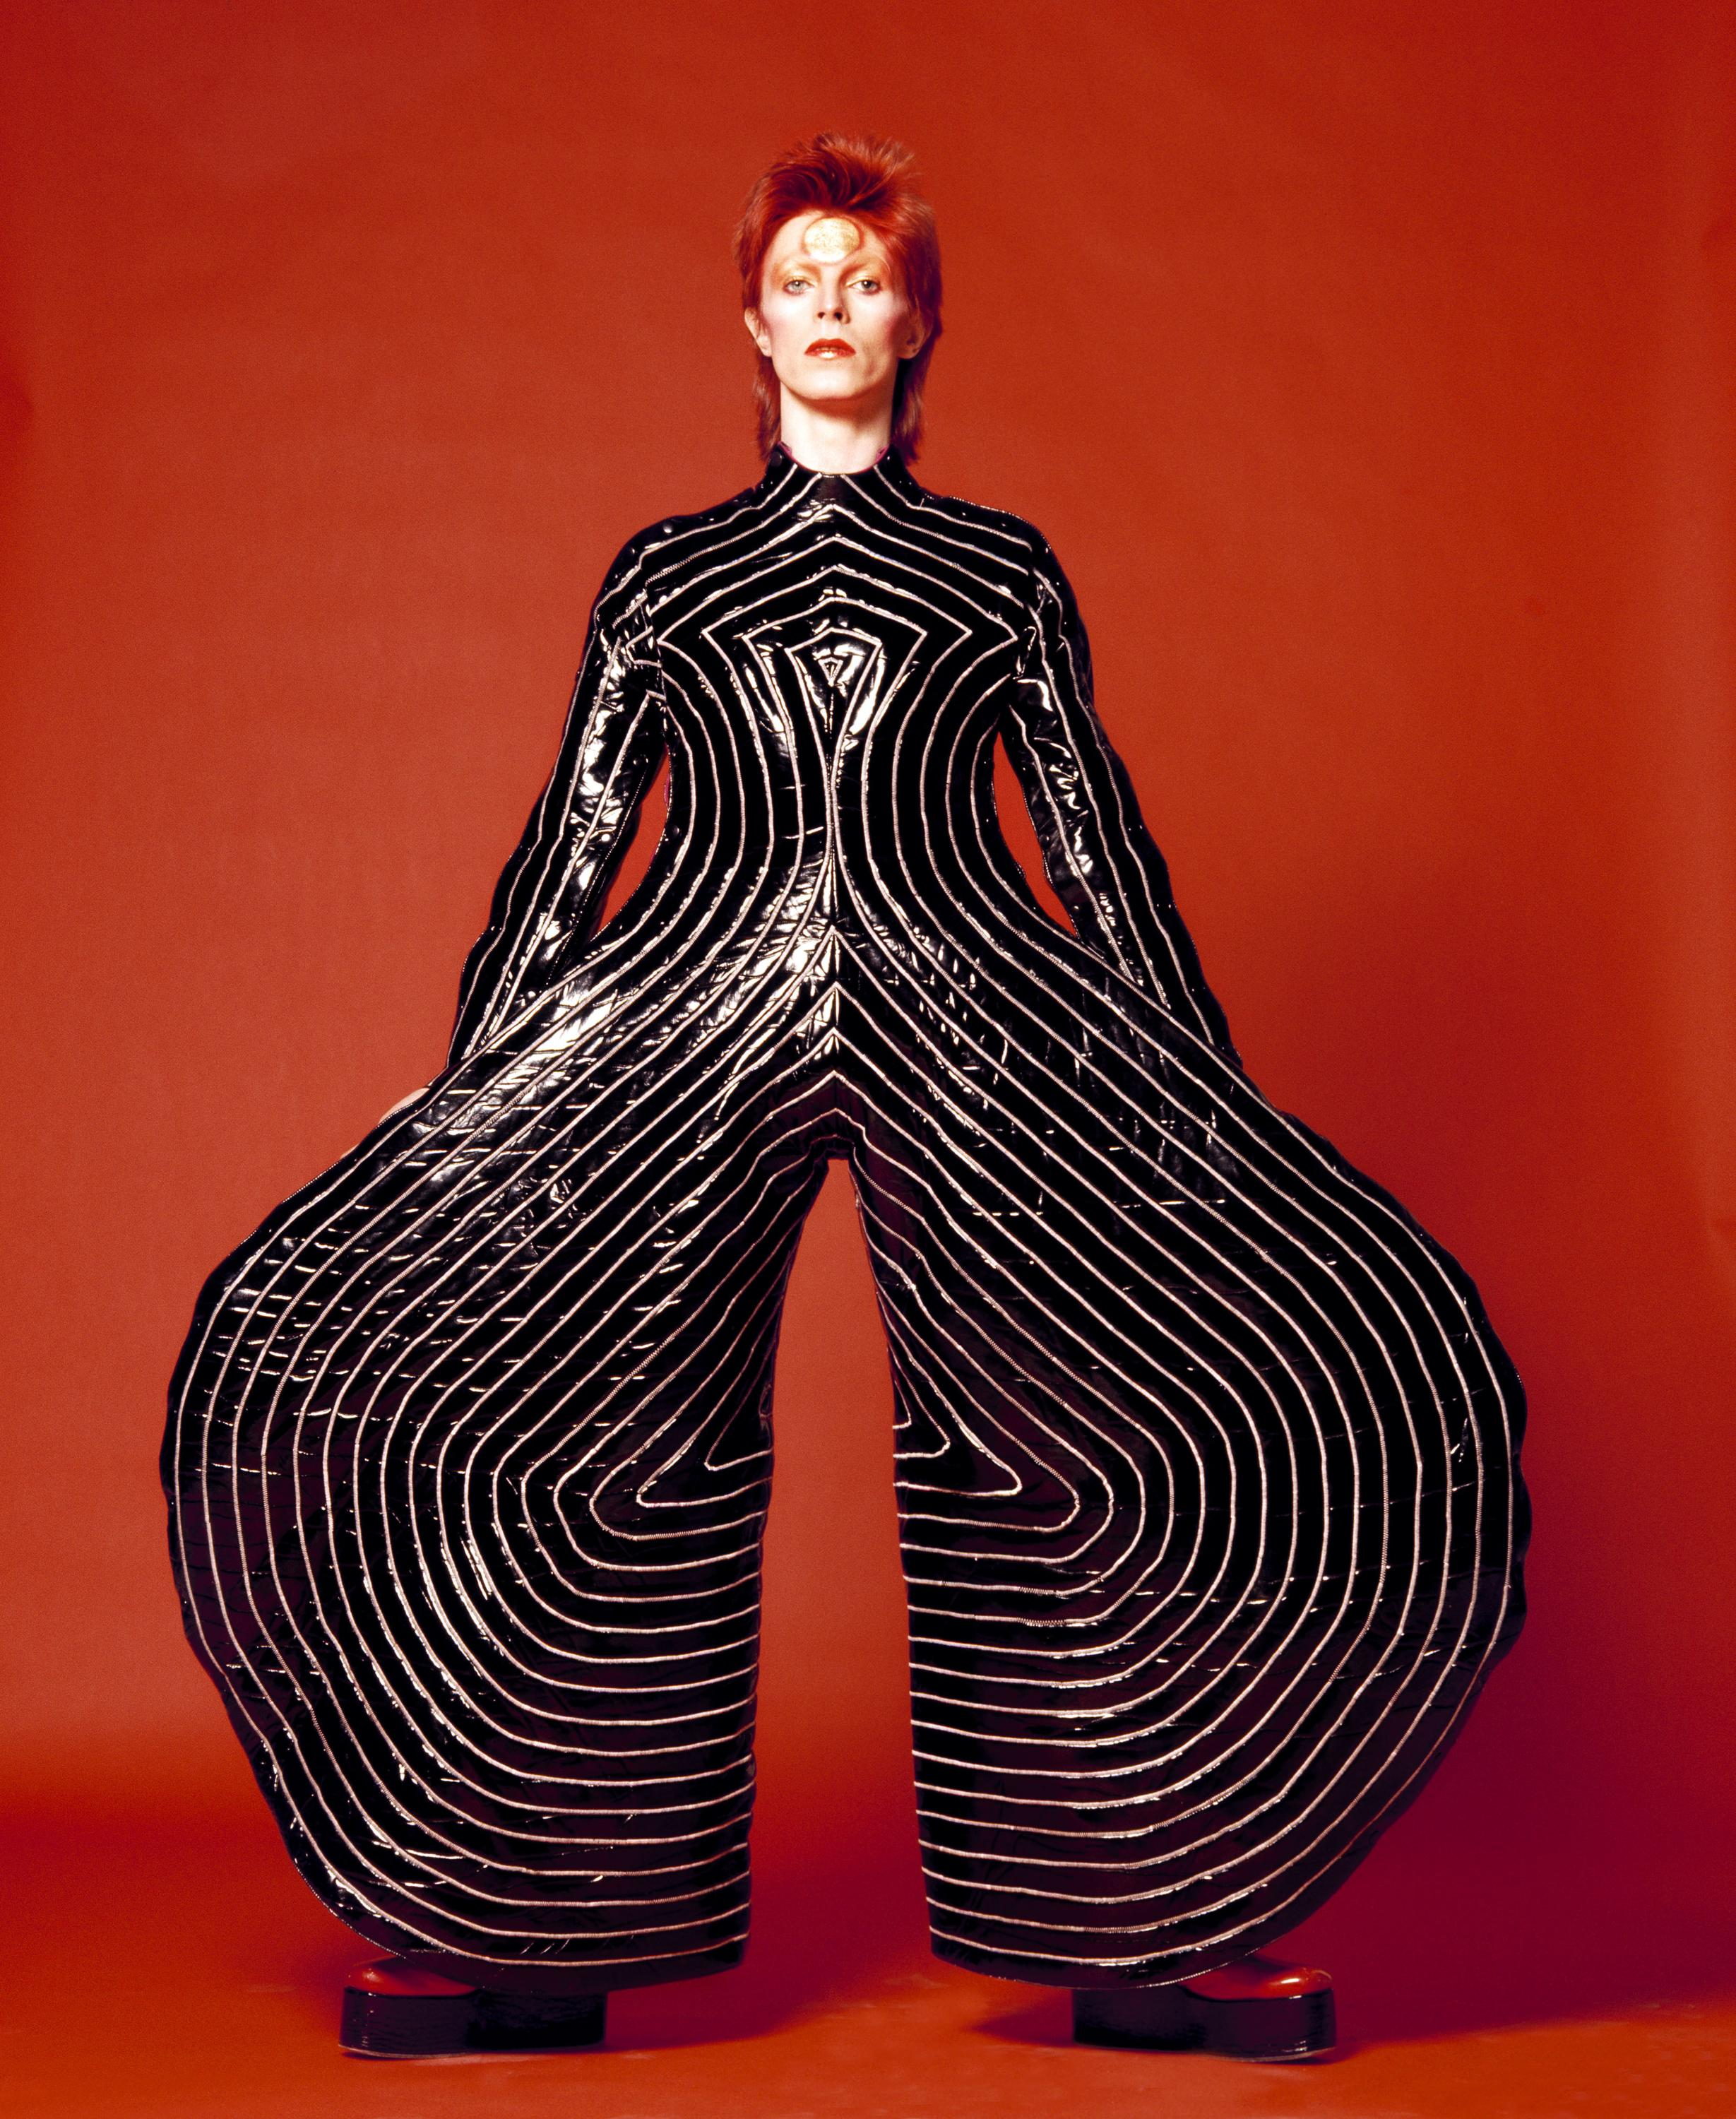 A photograph of David Bowie with pale skin and bright red hair wearing a wide-leg black jumpsuit with white stripes in front of a red background.